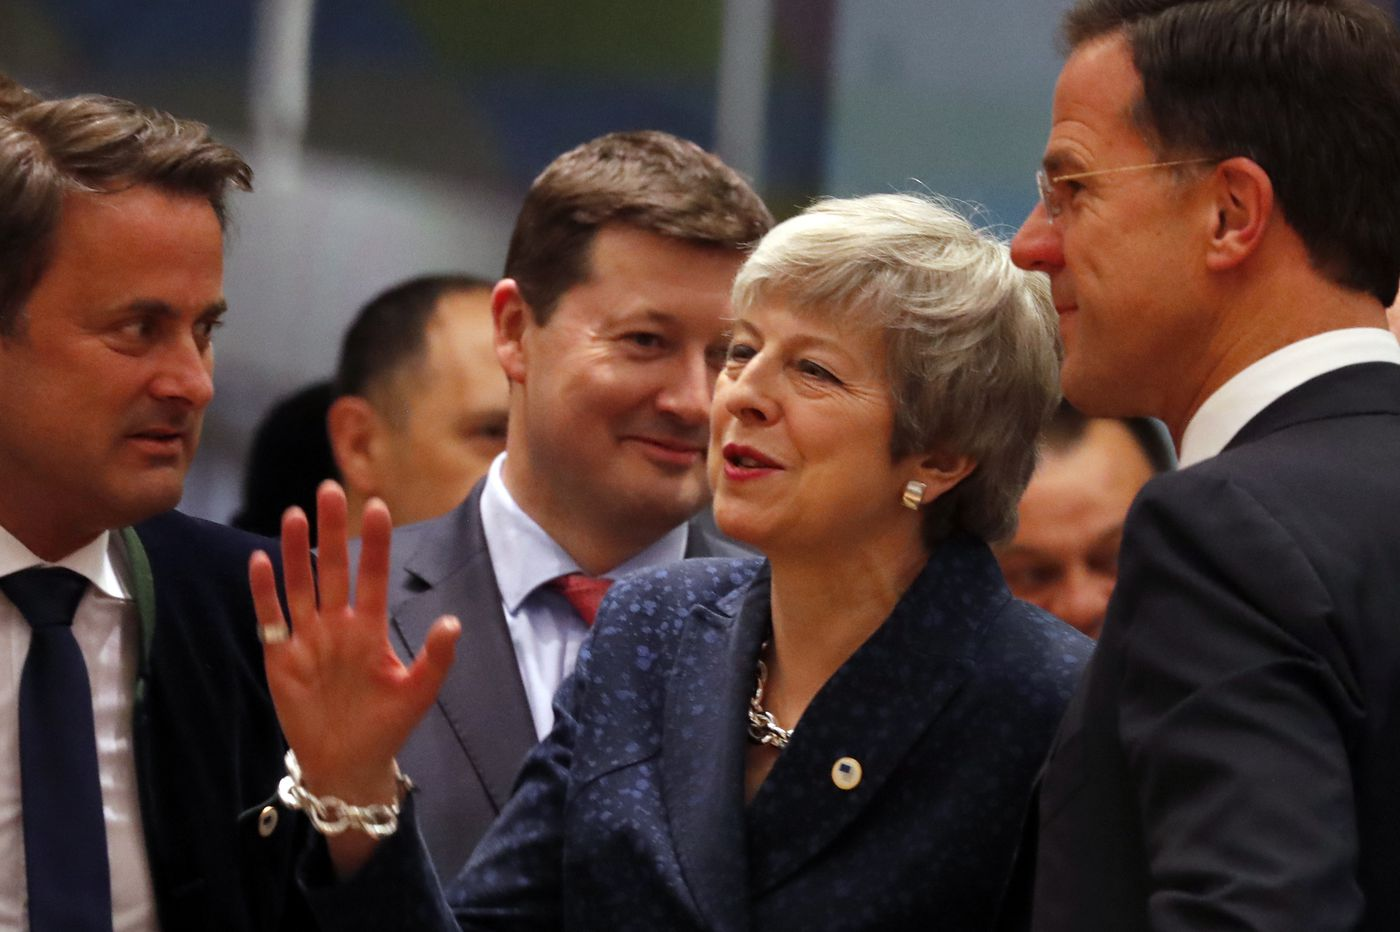 Europe offers U.K. more time to leave the bloc